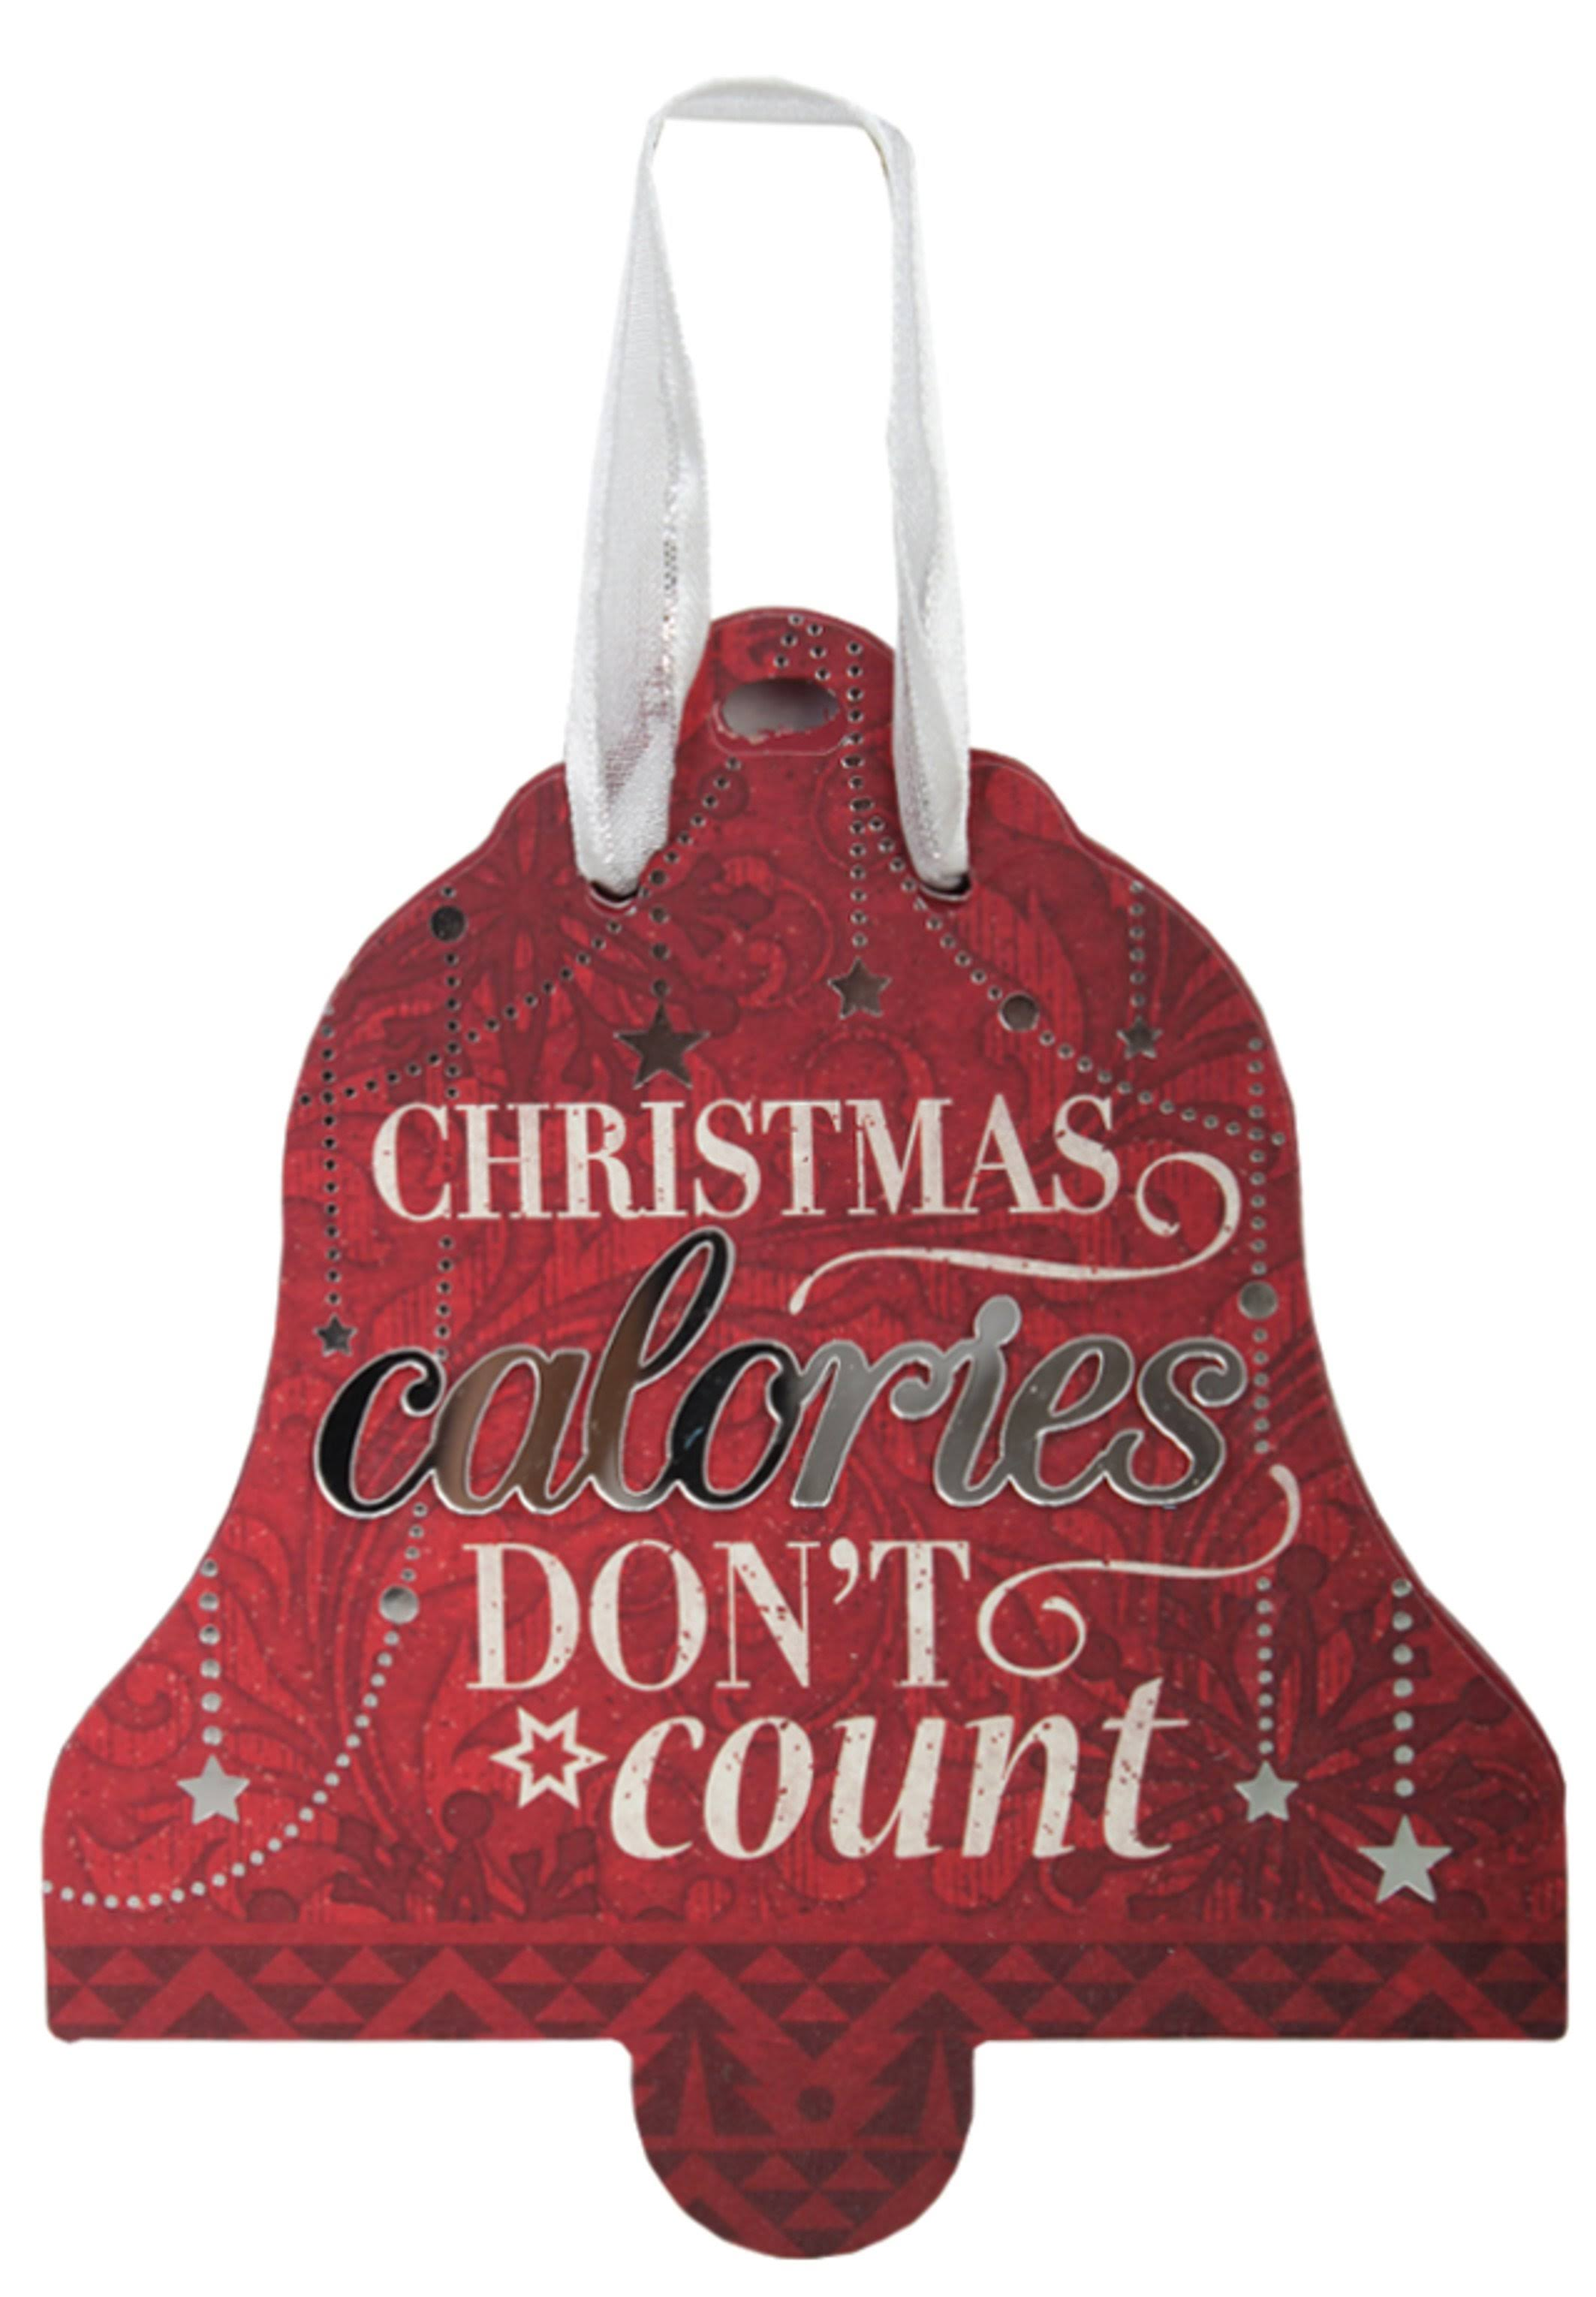 Festive Word Christmas Calories Don't Count Ornament Multicolor